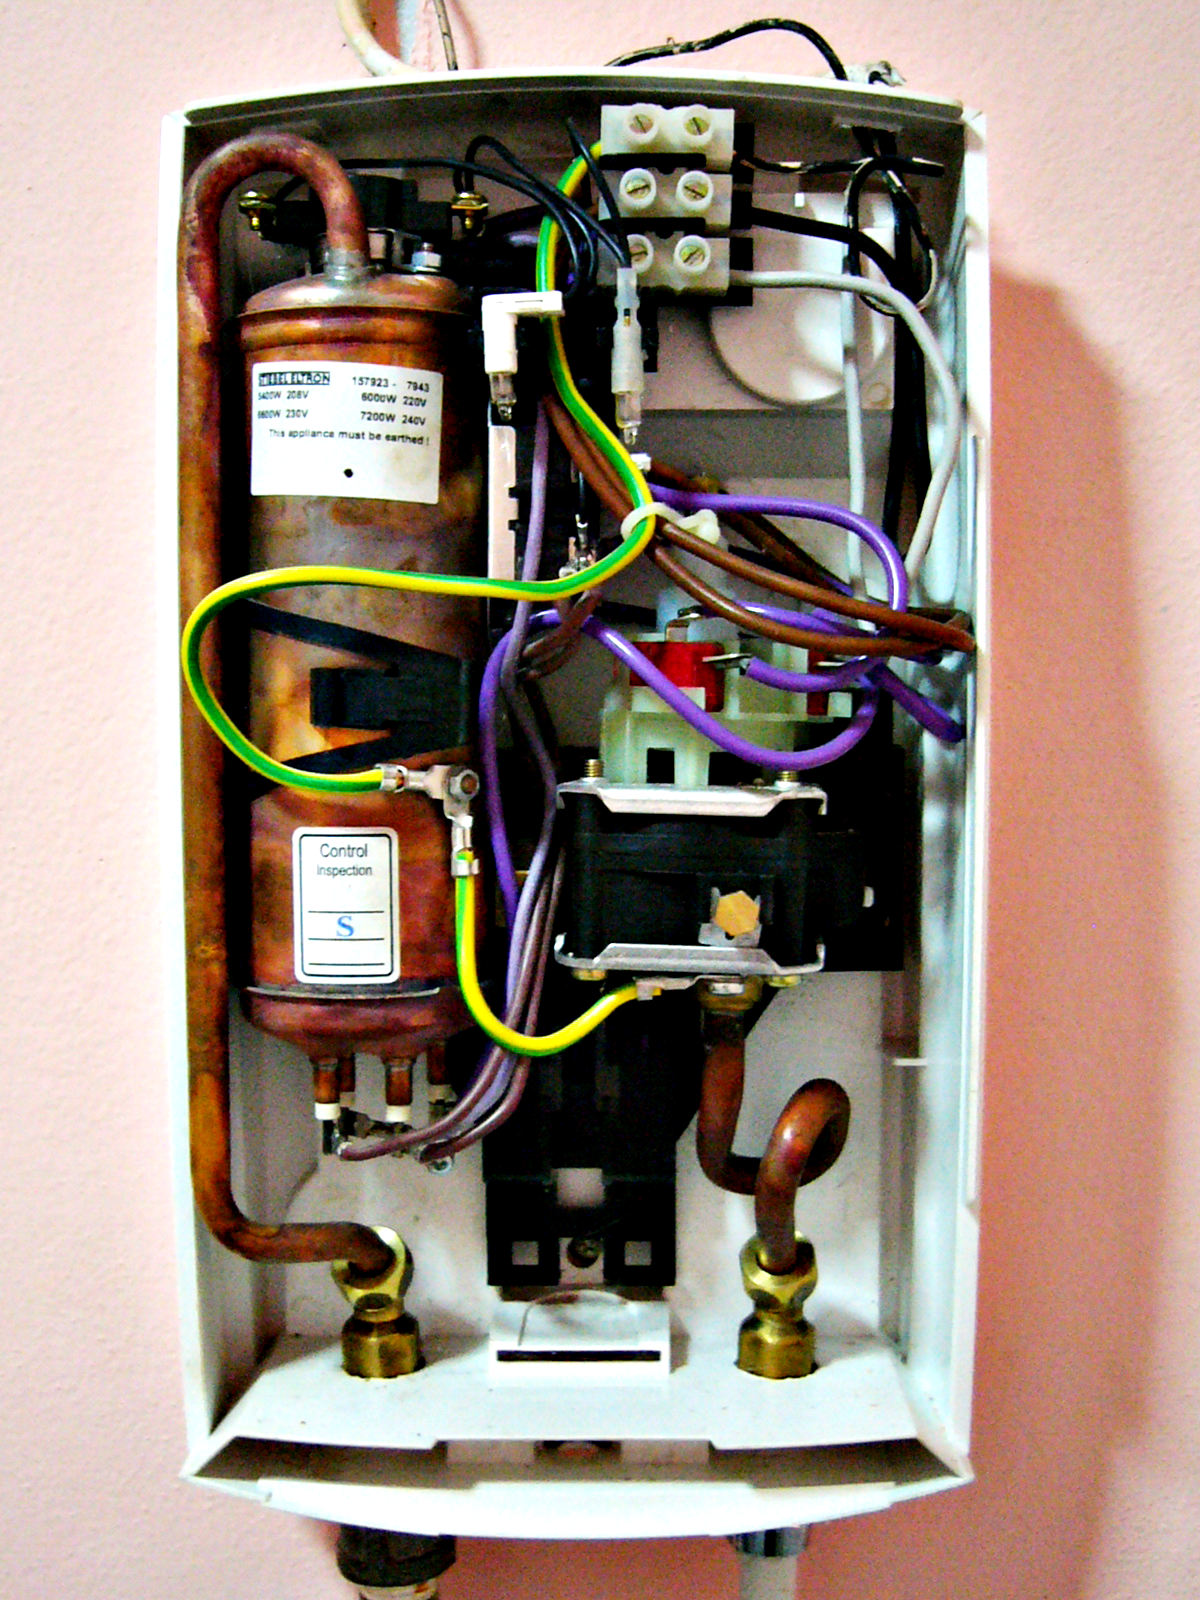 Geyser Tripping Main Switch Causes And Solutions Ideas By Mr Right Wiring My Bathroom Poor Electrical